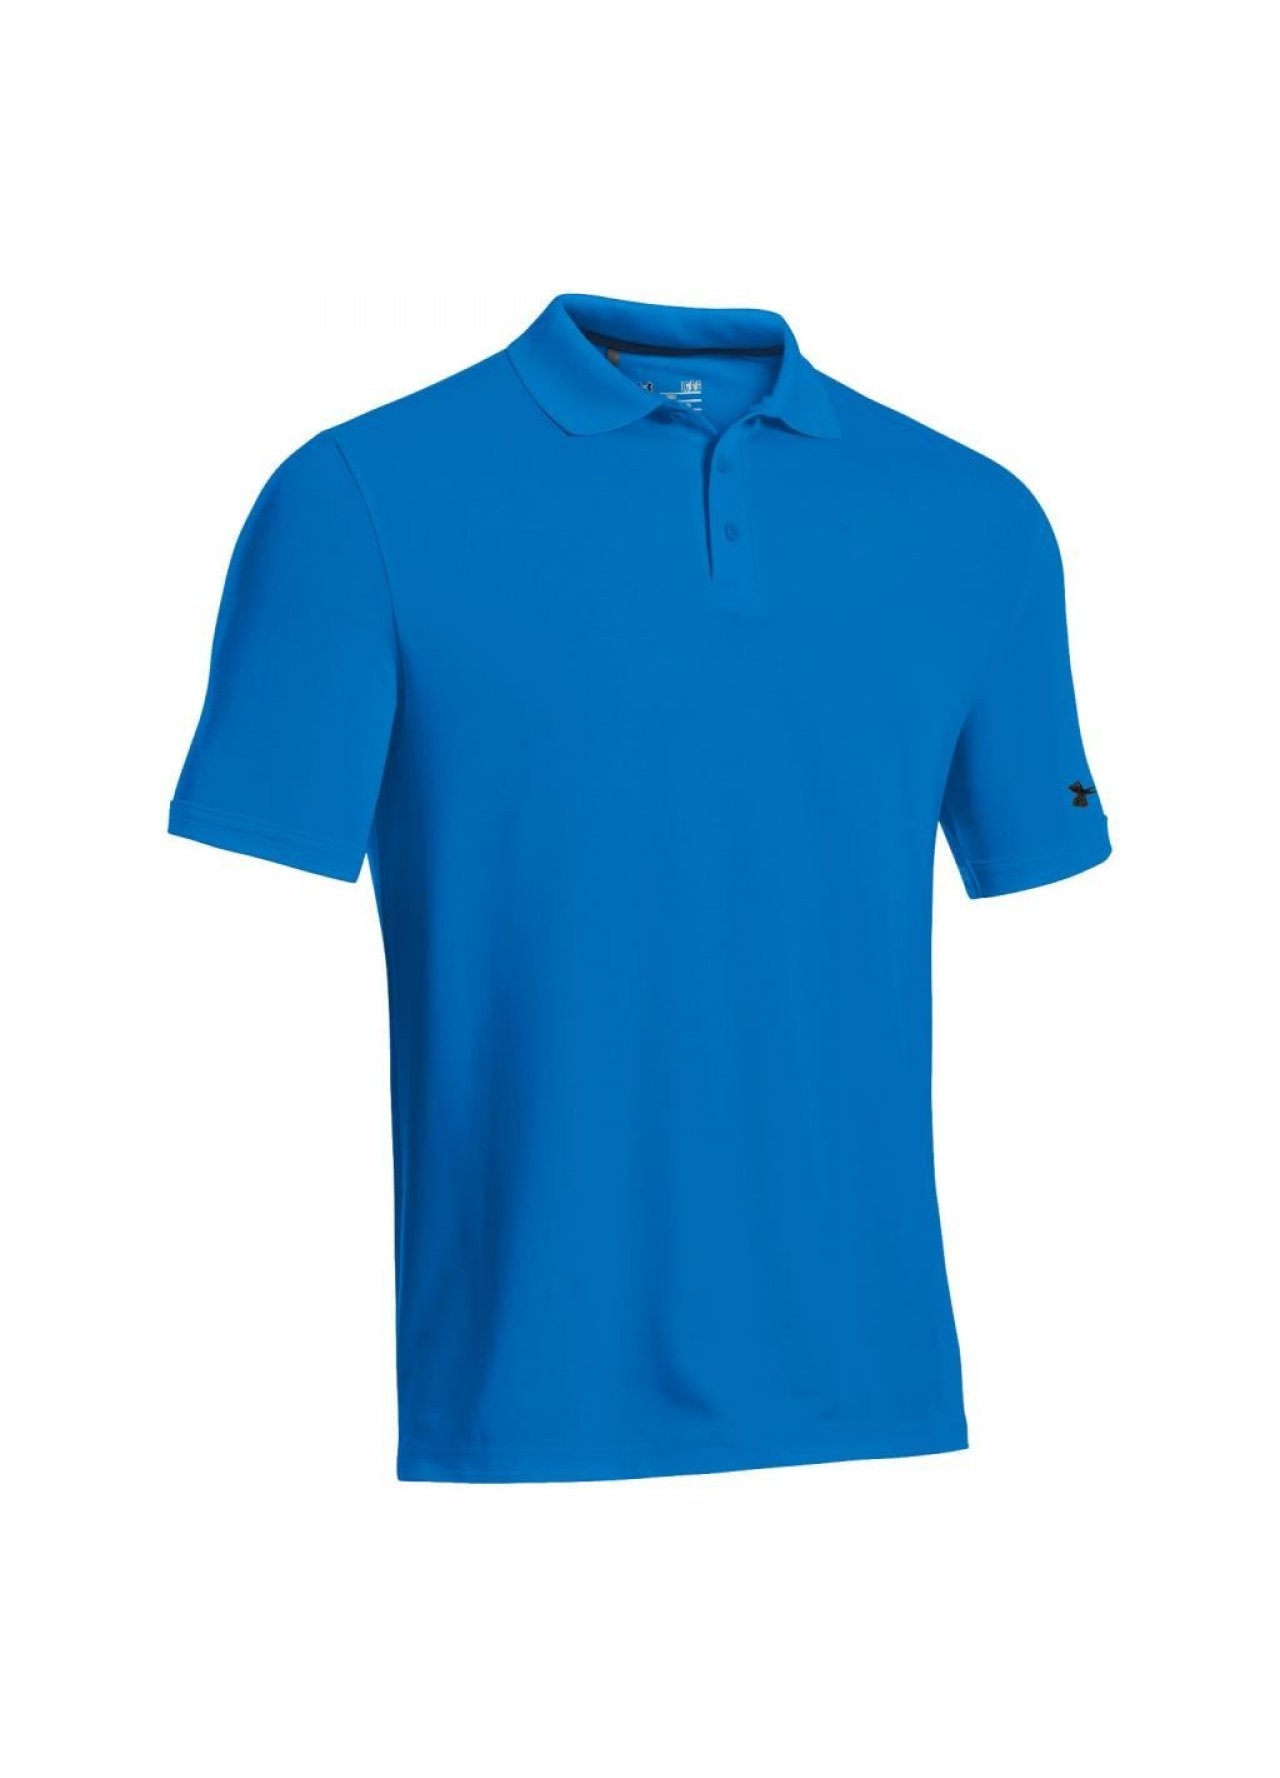 Golf clothing shirts blue under armour golf for Under armour company shirts